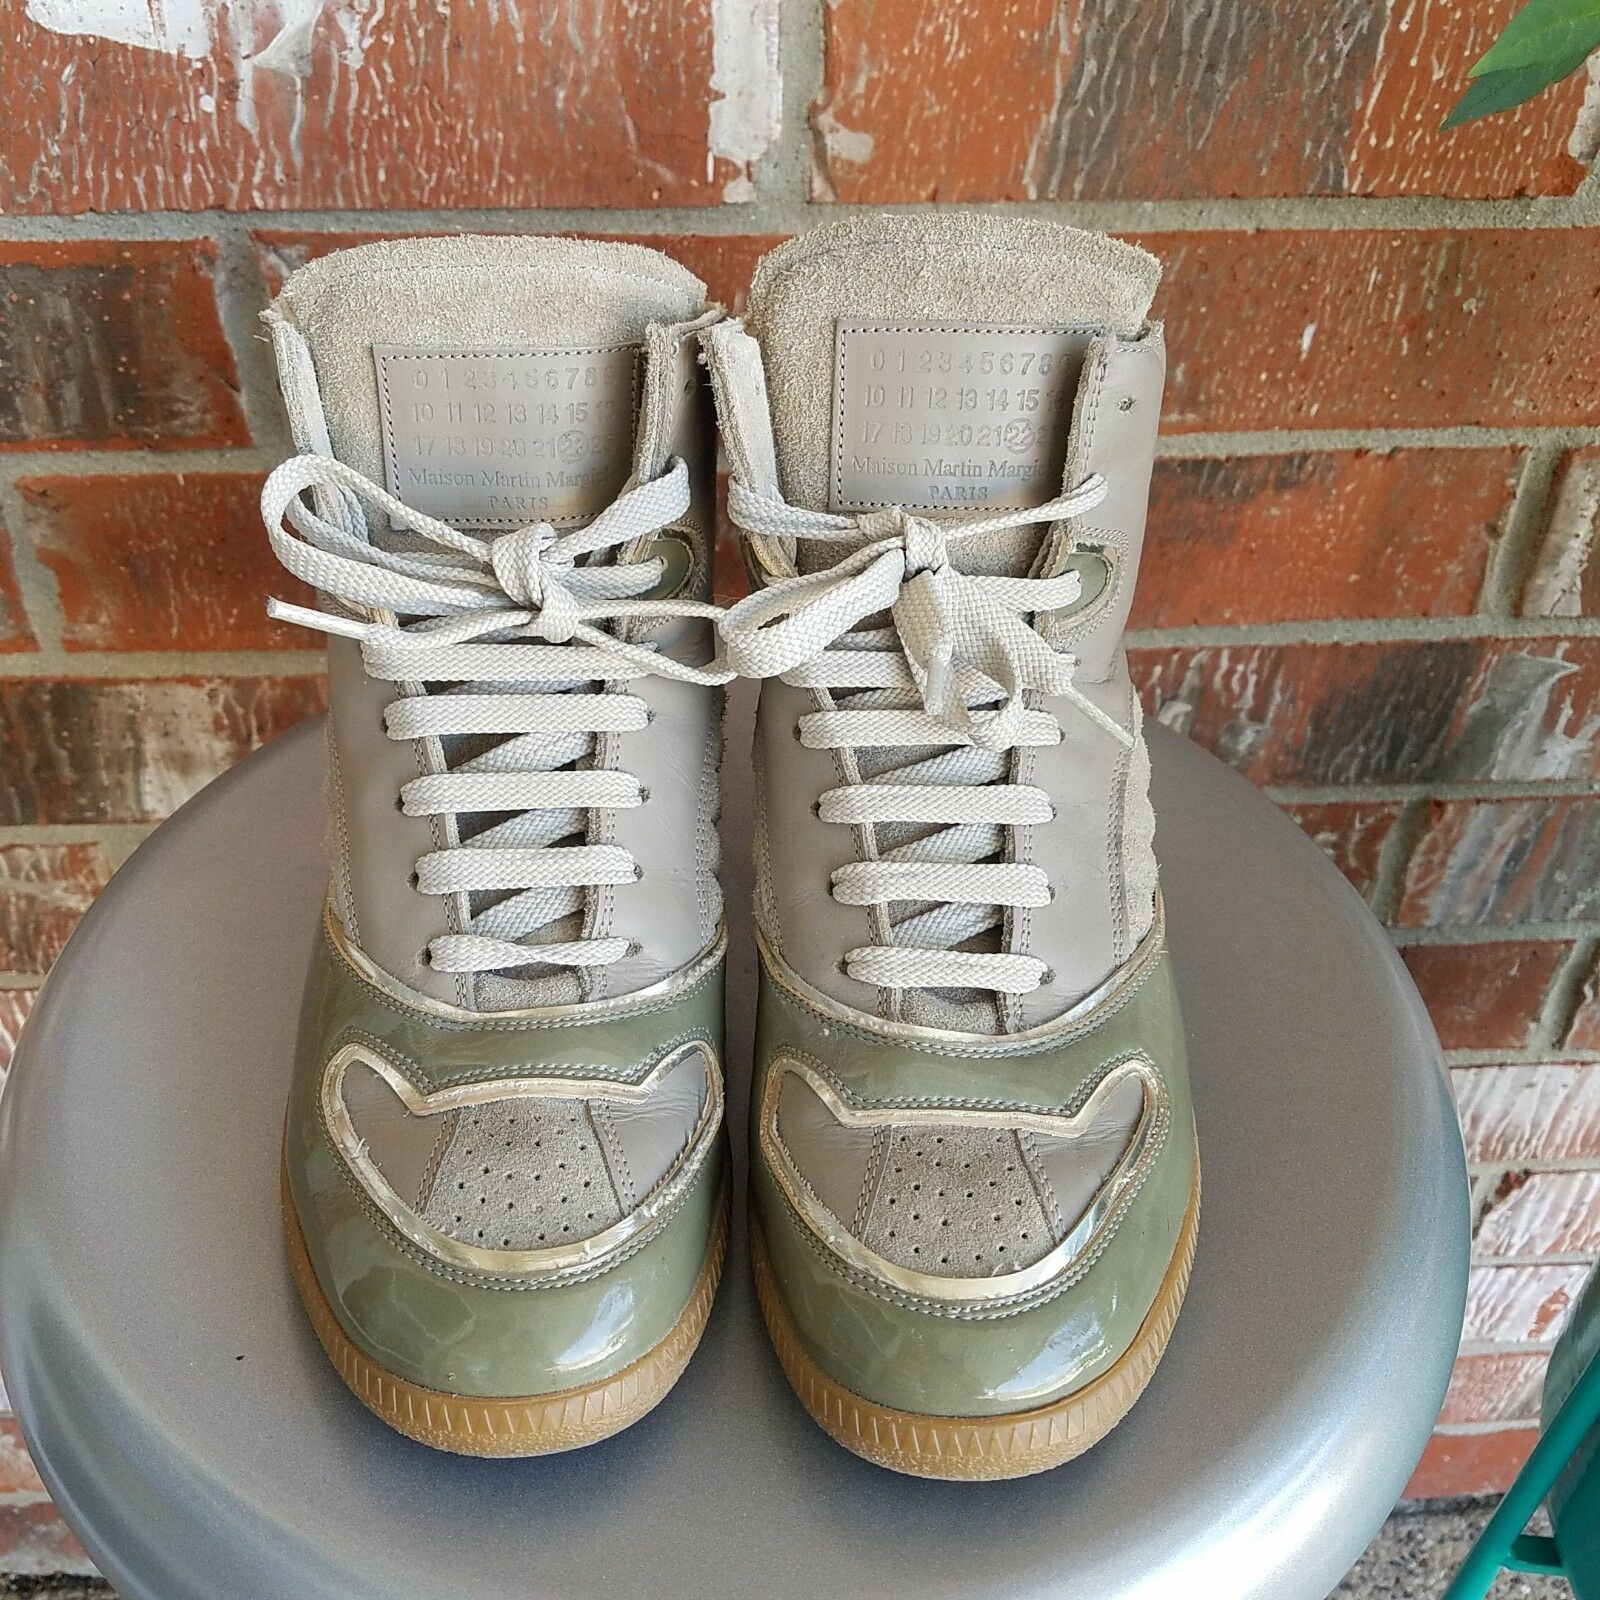 Auth Maison Martin Margiela Panelled High Top Taupe Olive Sneakers 37